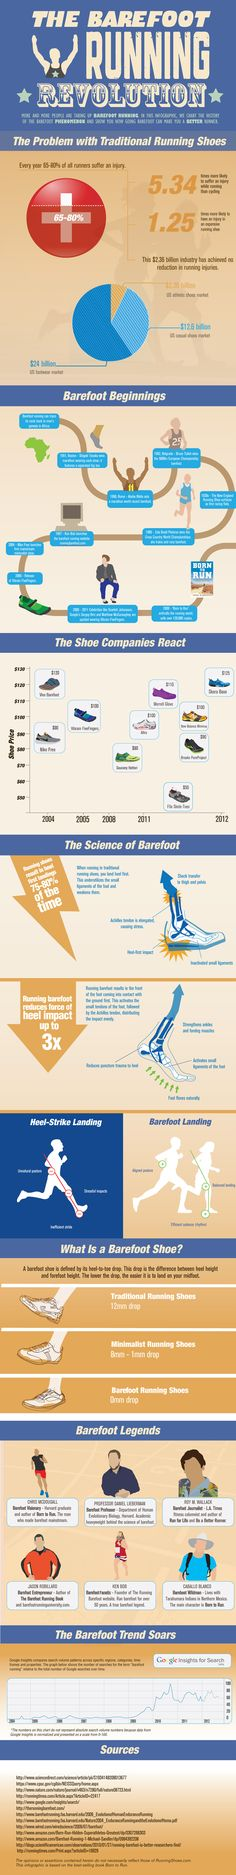 The Barefoot Running Revolution